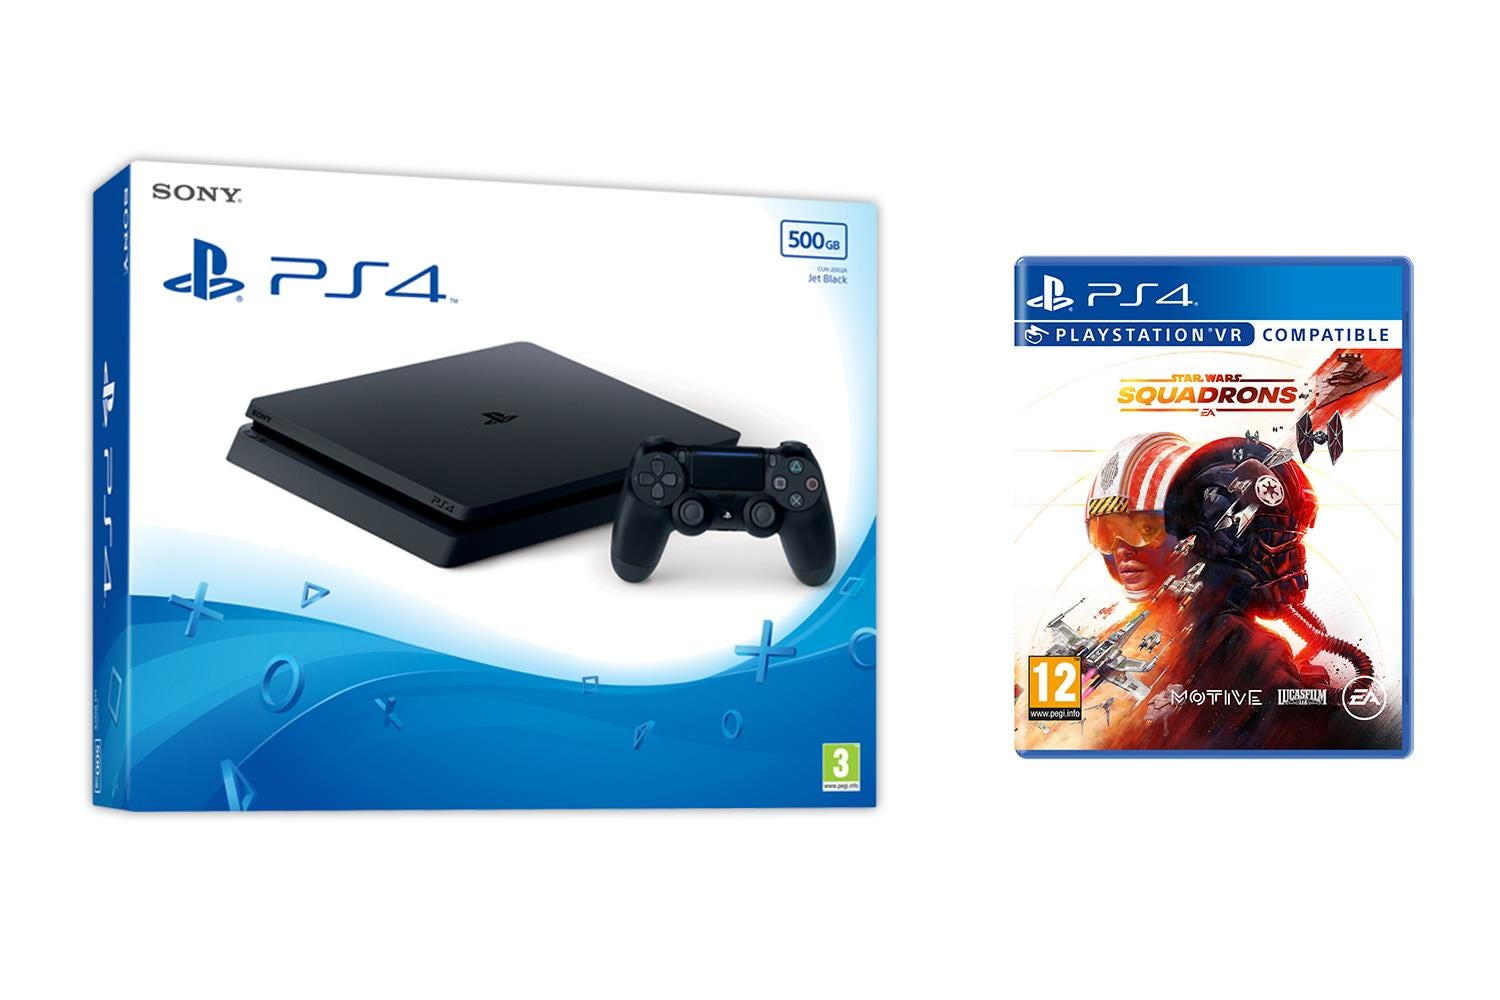 Sony PlayStation 4 500GB Jet Black Console with Star Wars: Squadrons